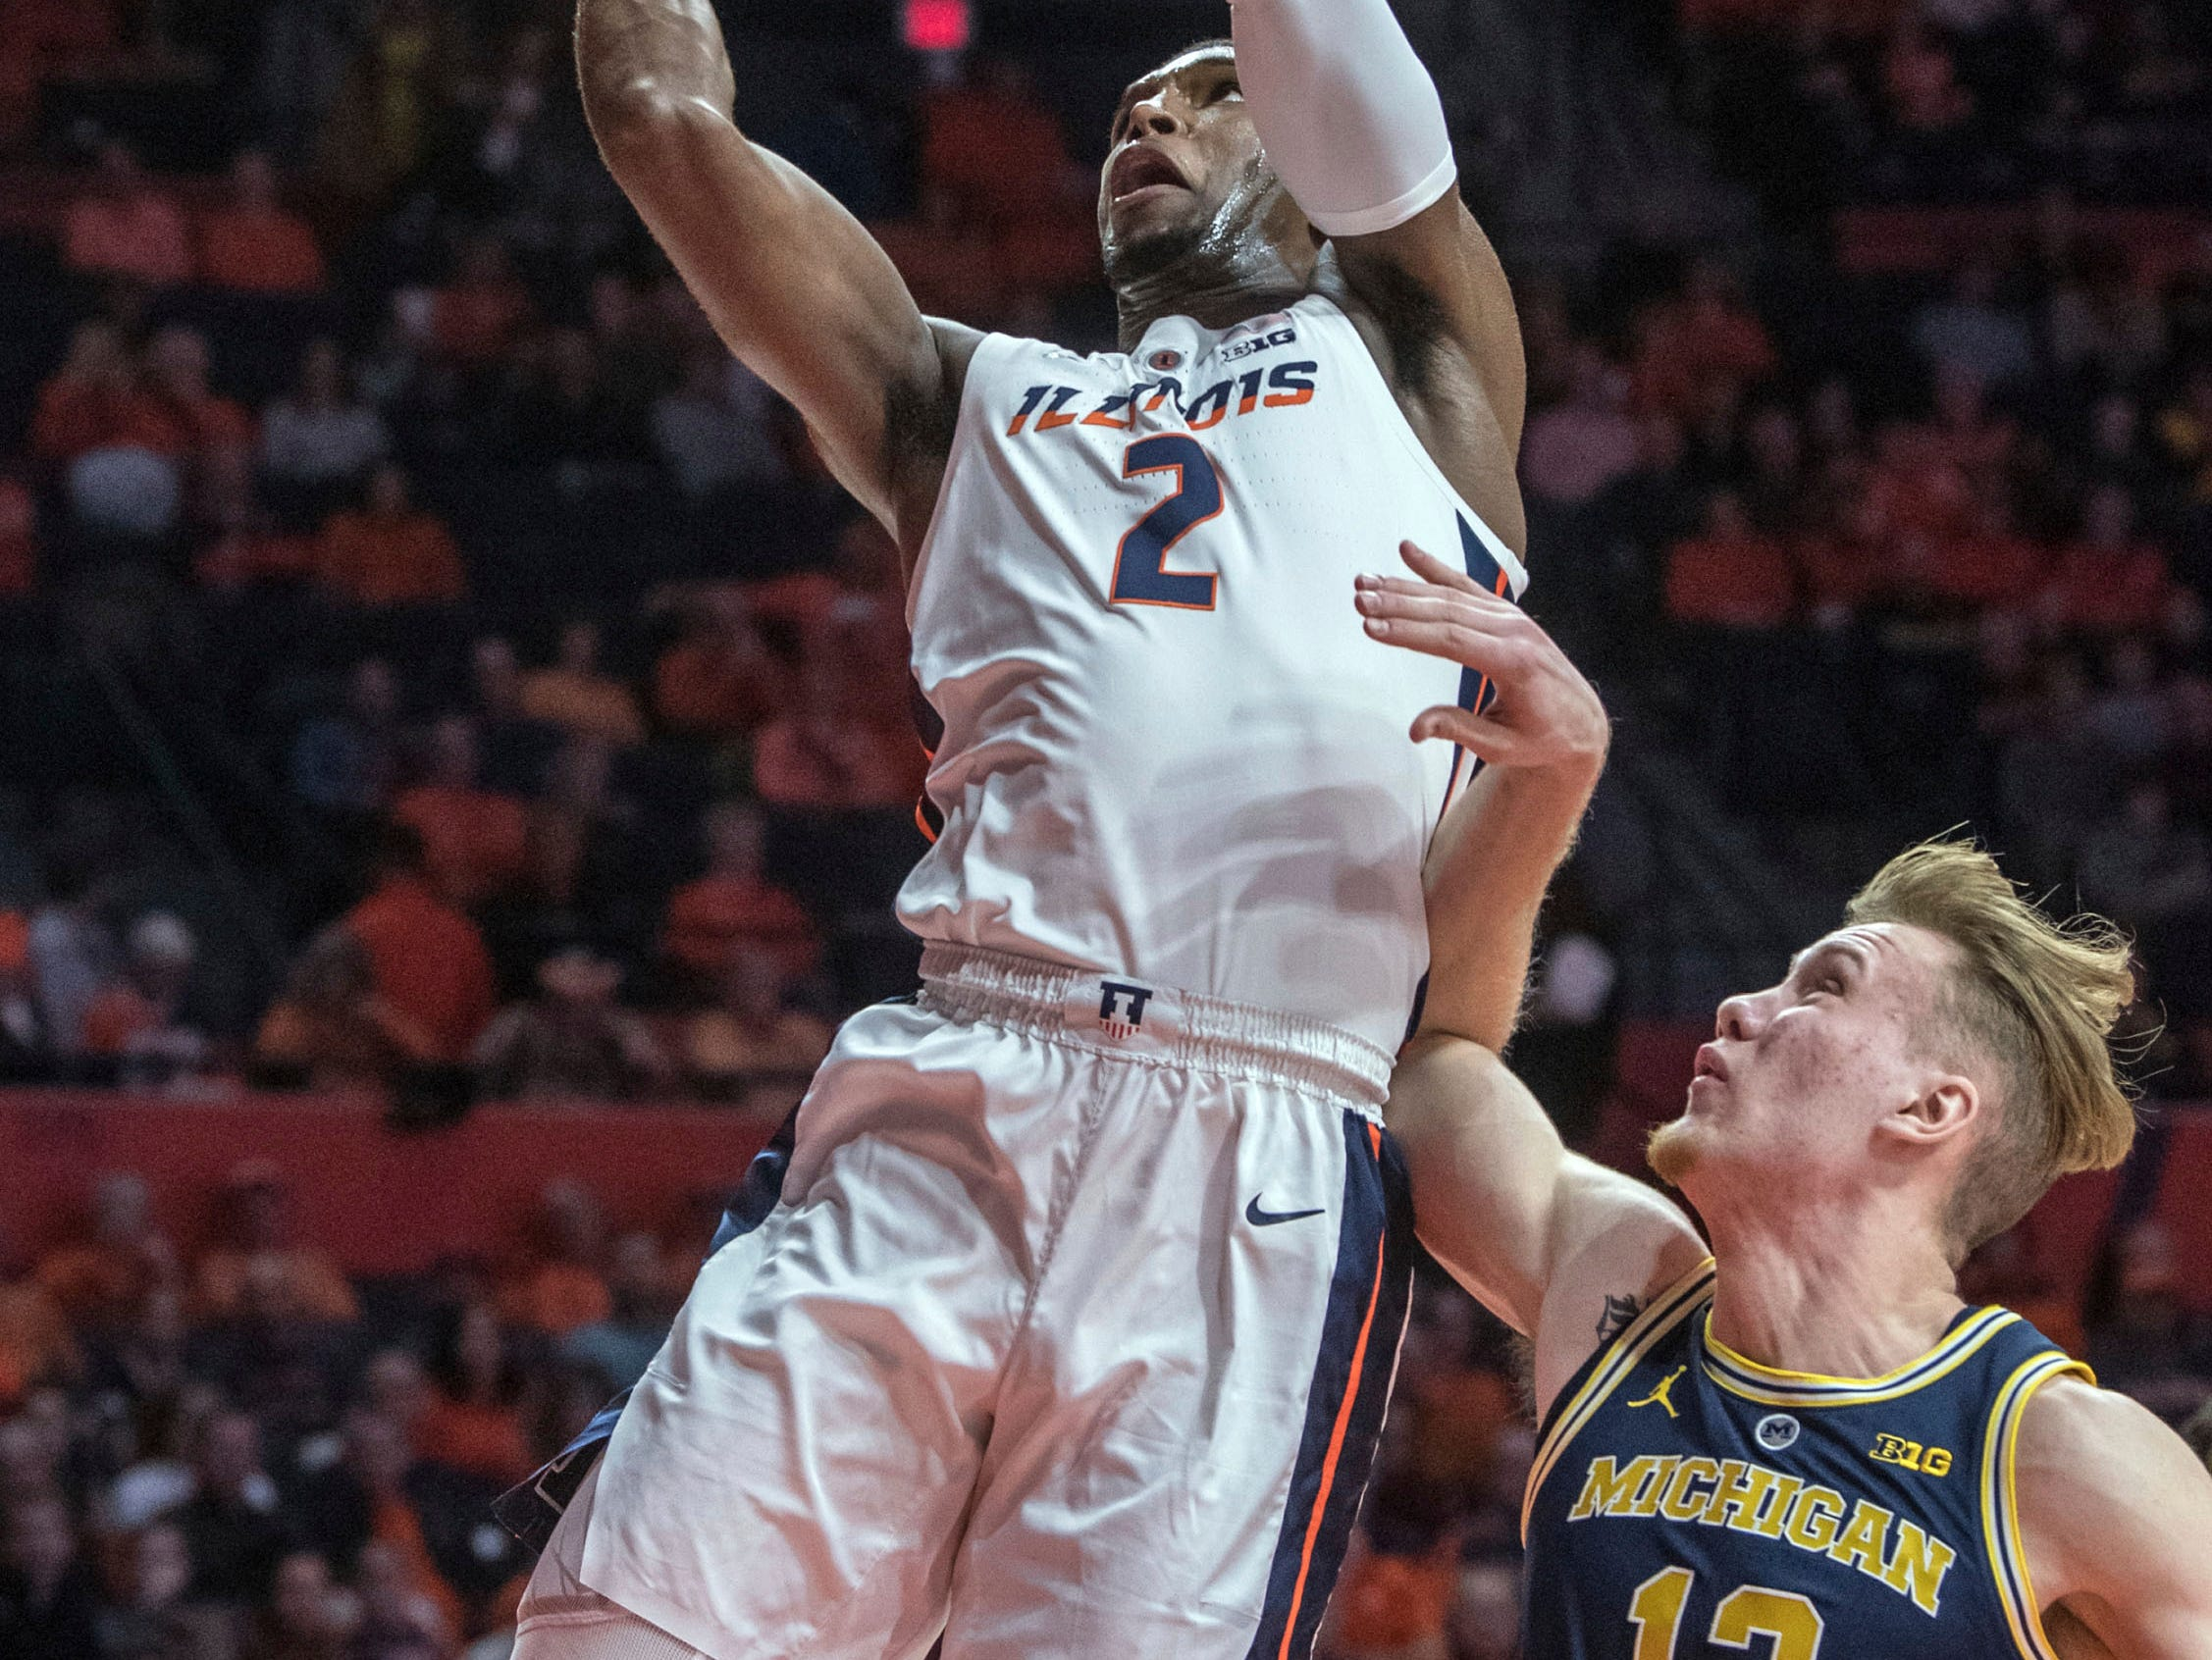 Illinois forward Kipper Nichols (2) loses the ball near Michigan forward Ignas Brazdeikis (13) during the first half.